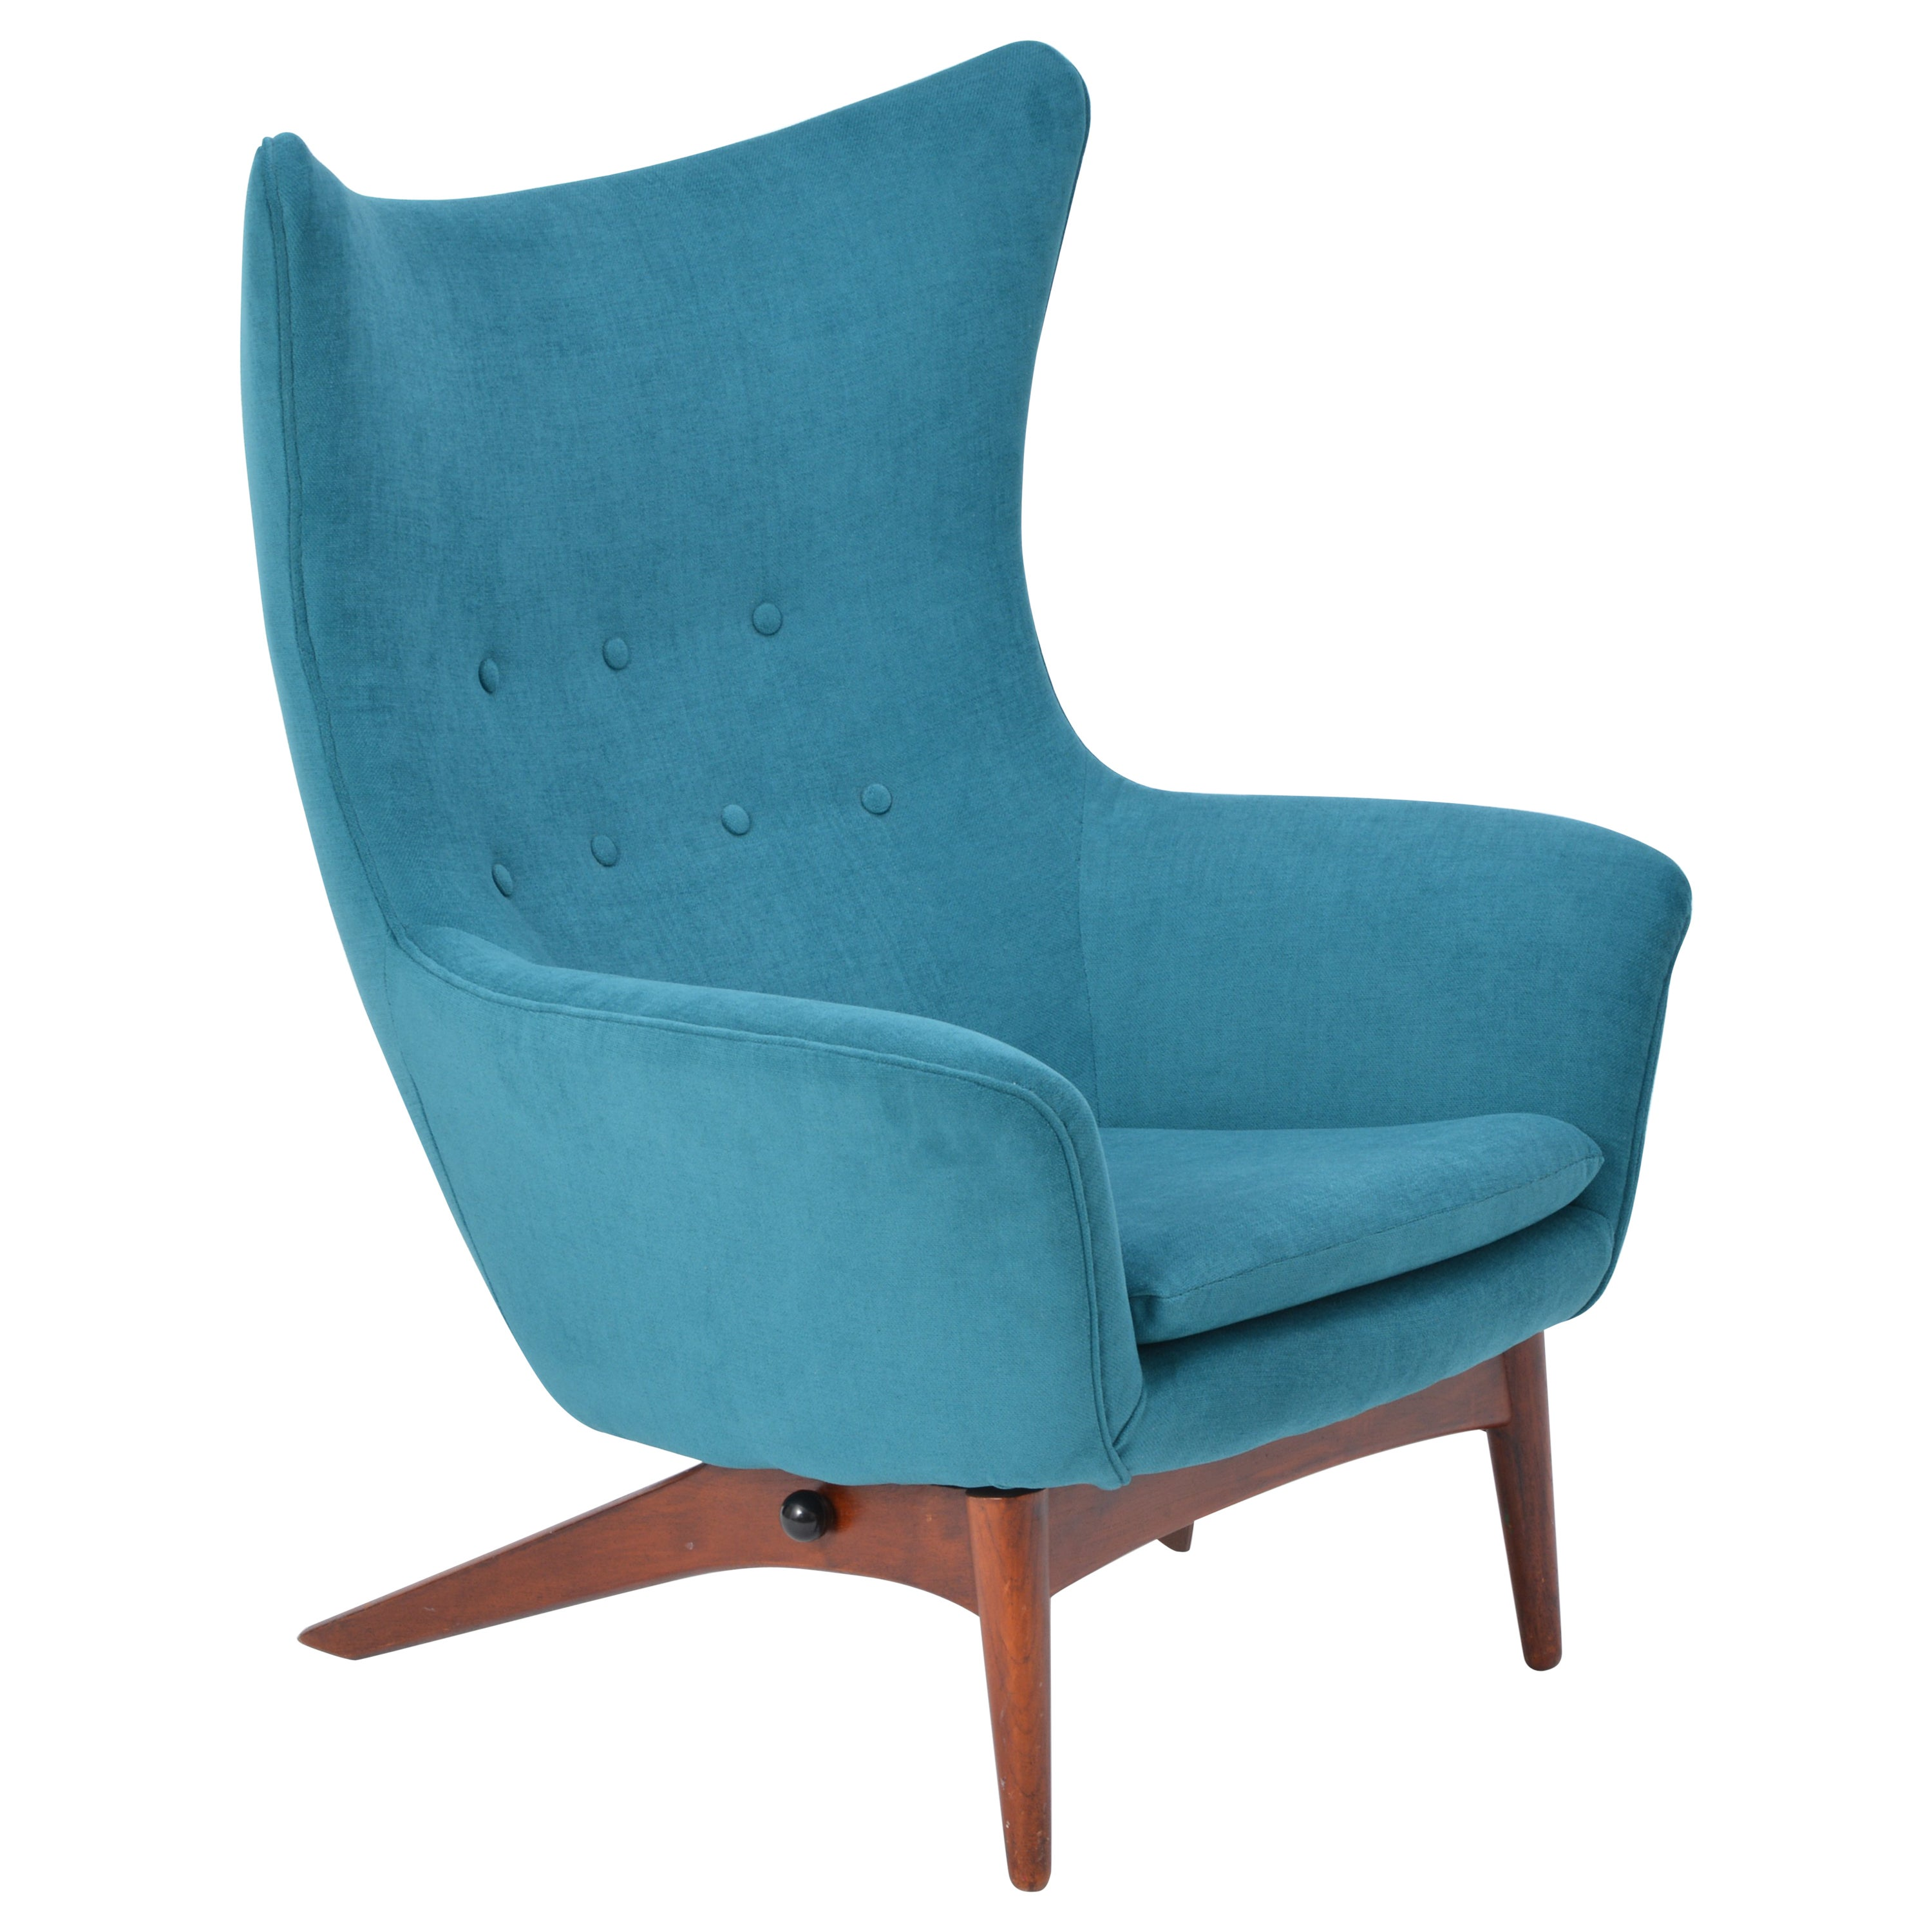 Reupholstered Danish Mid-Century reclining chair designed by Henry Walter Klein